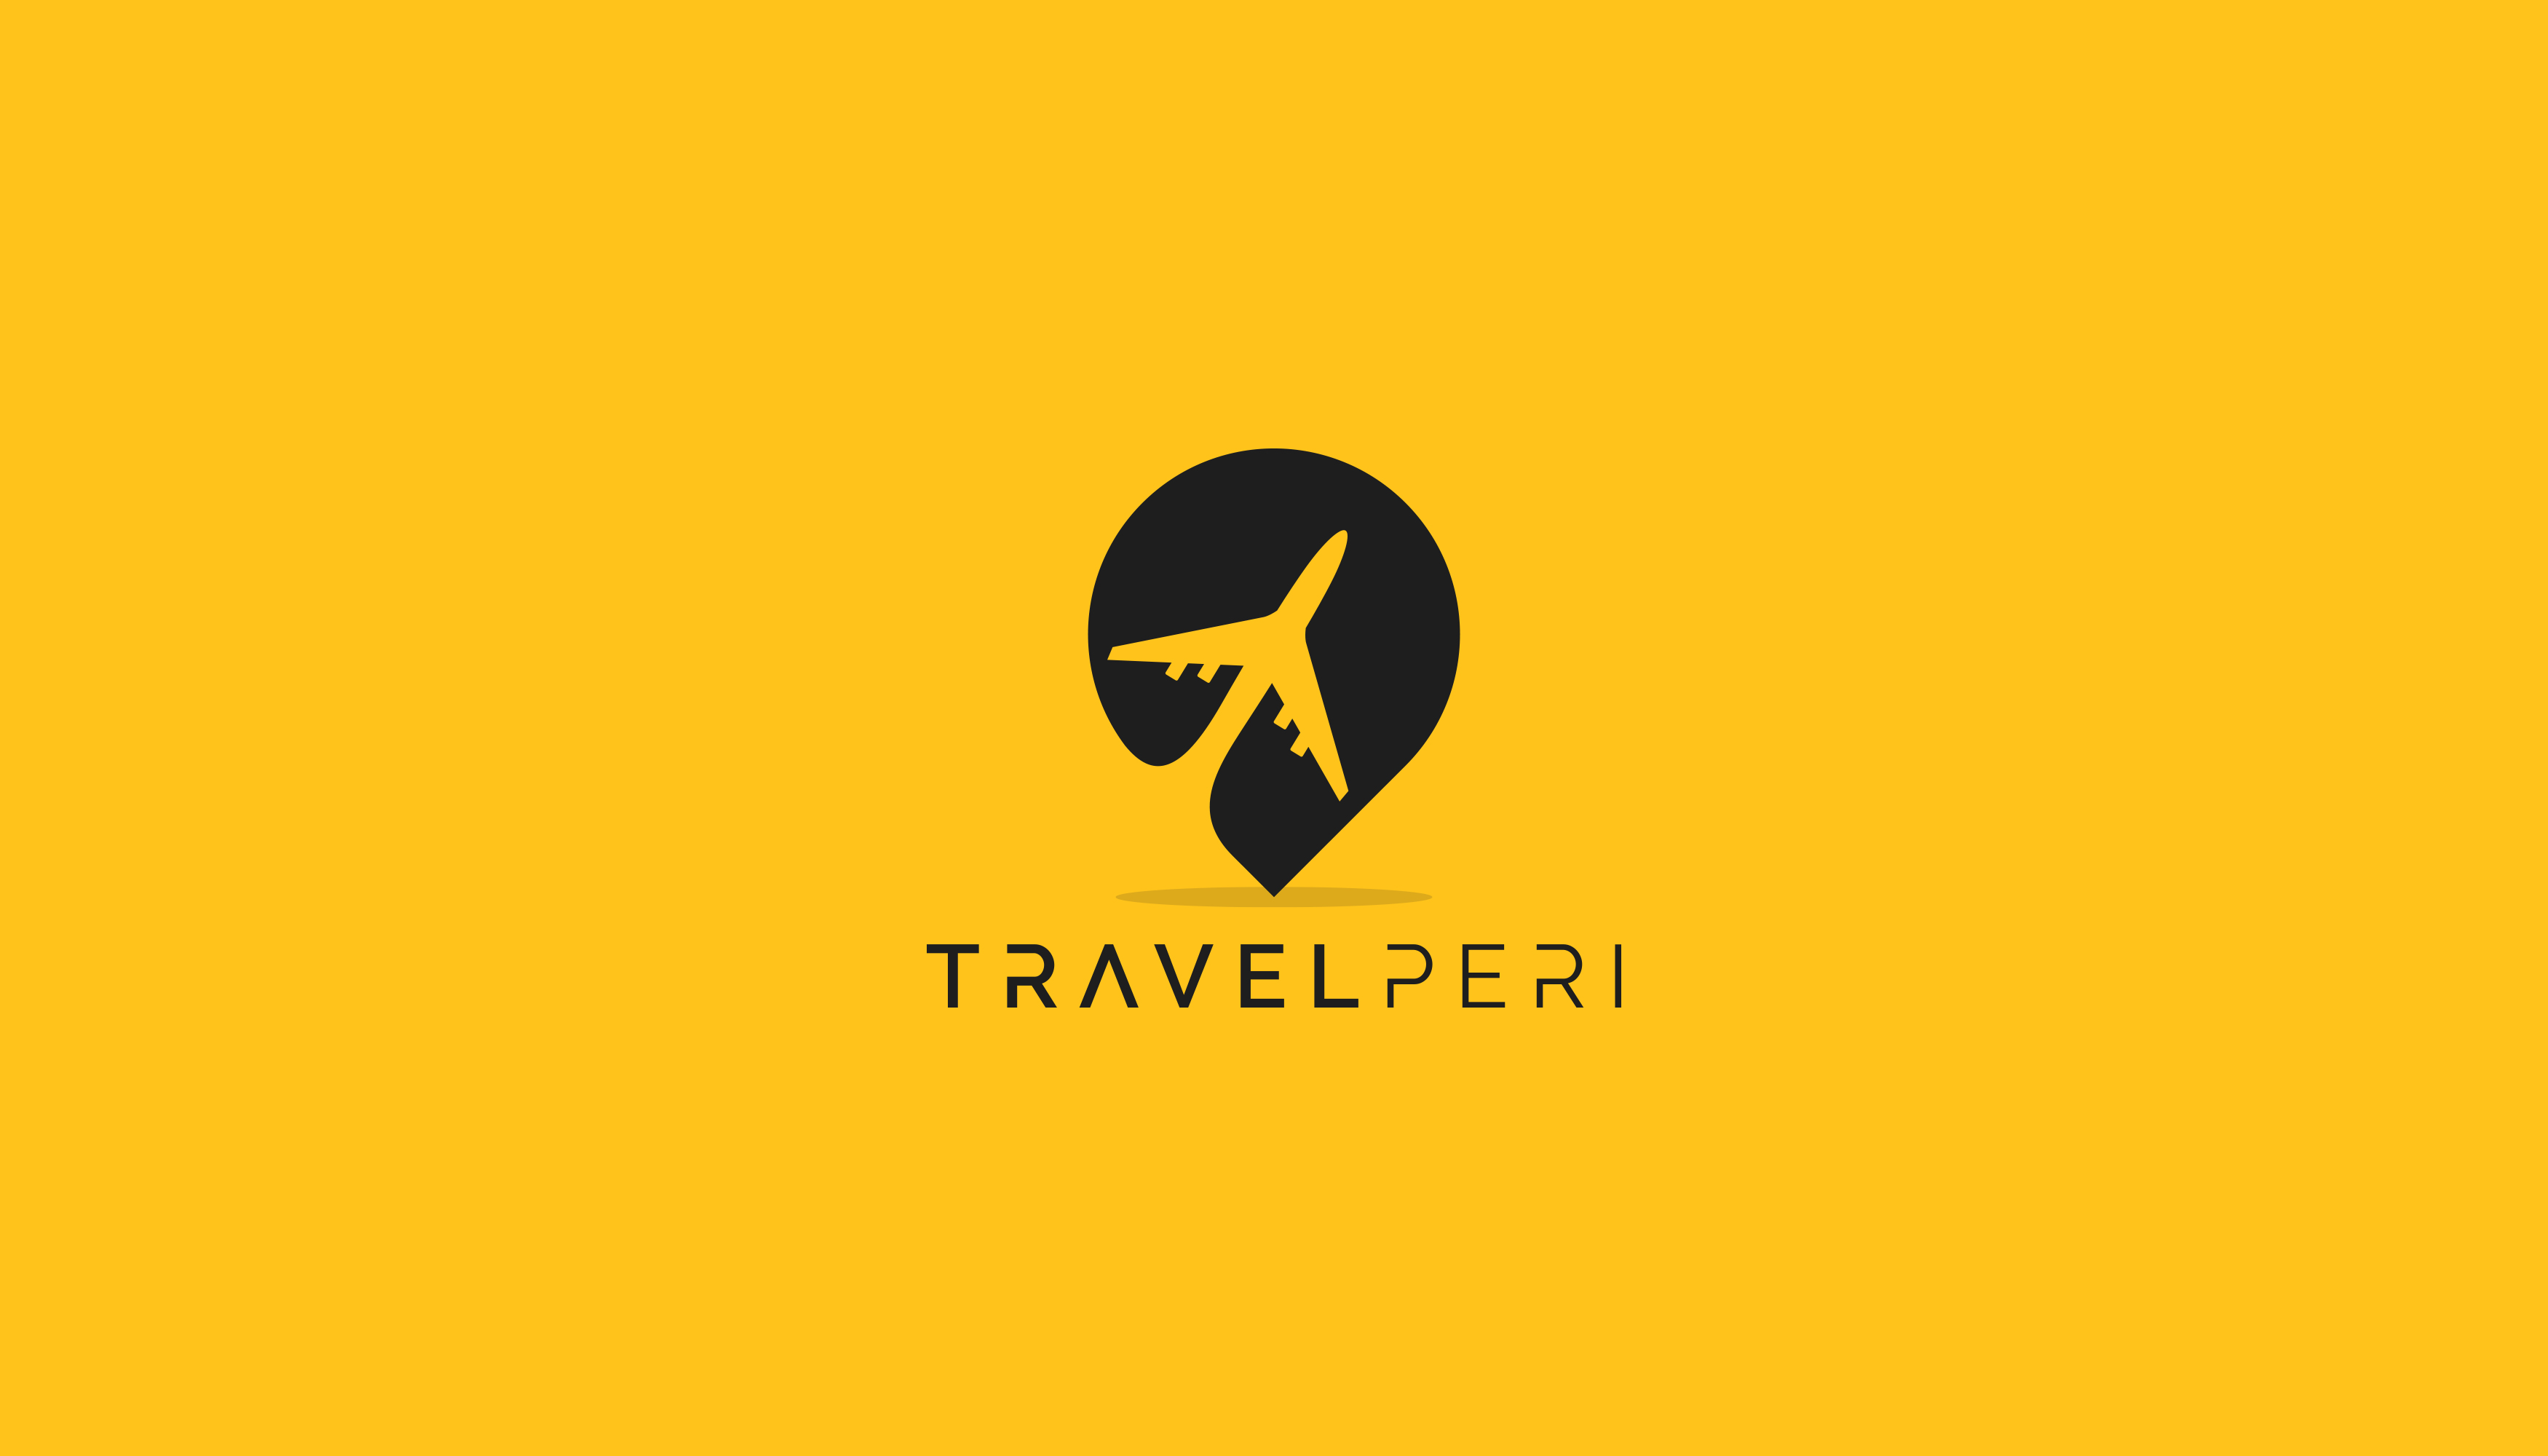 TravelPeri